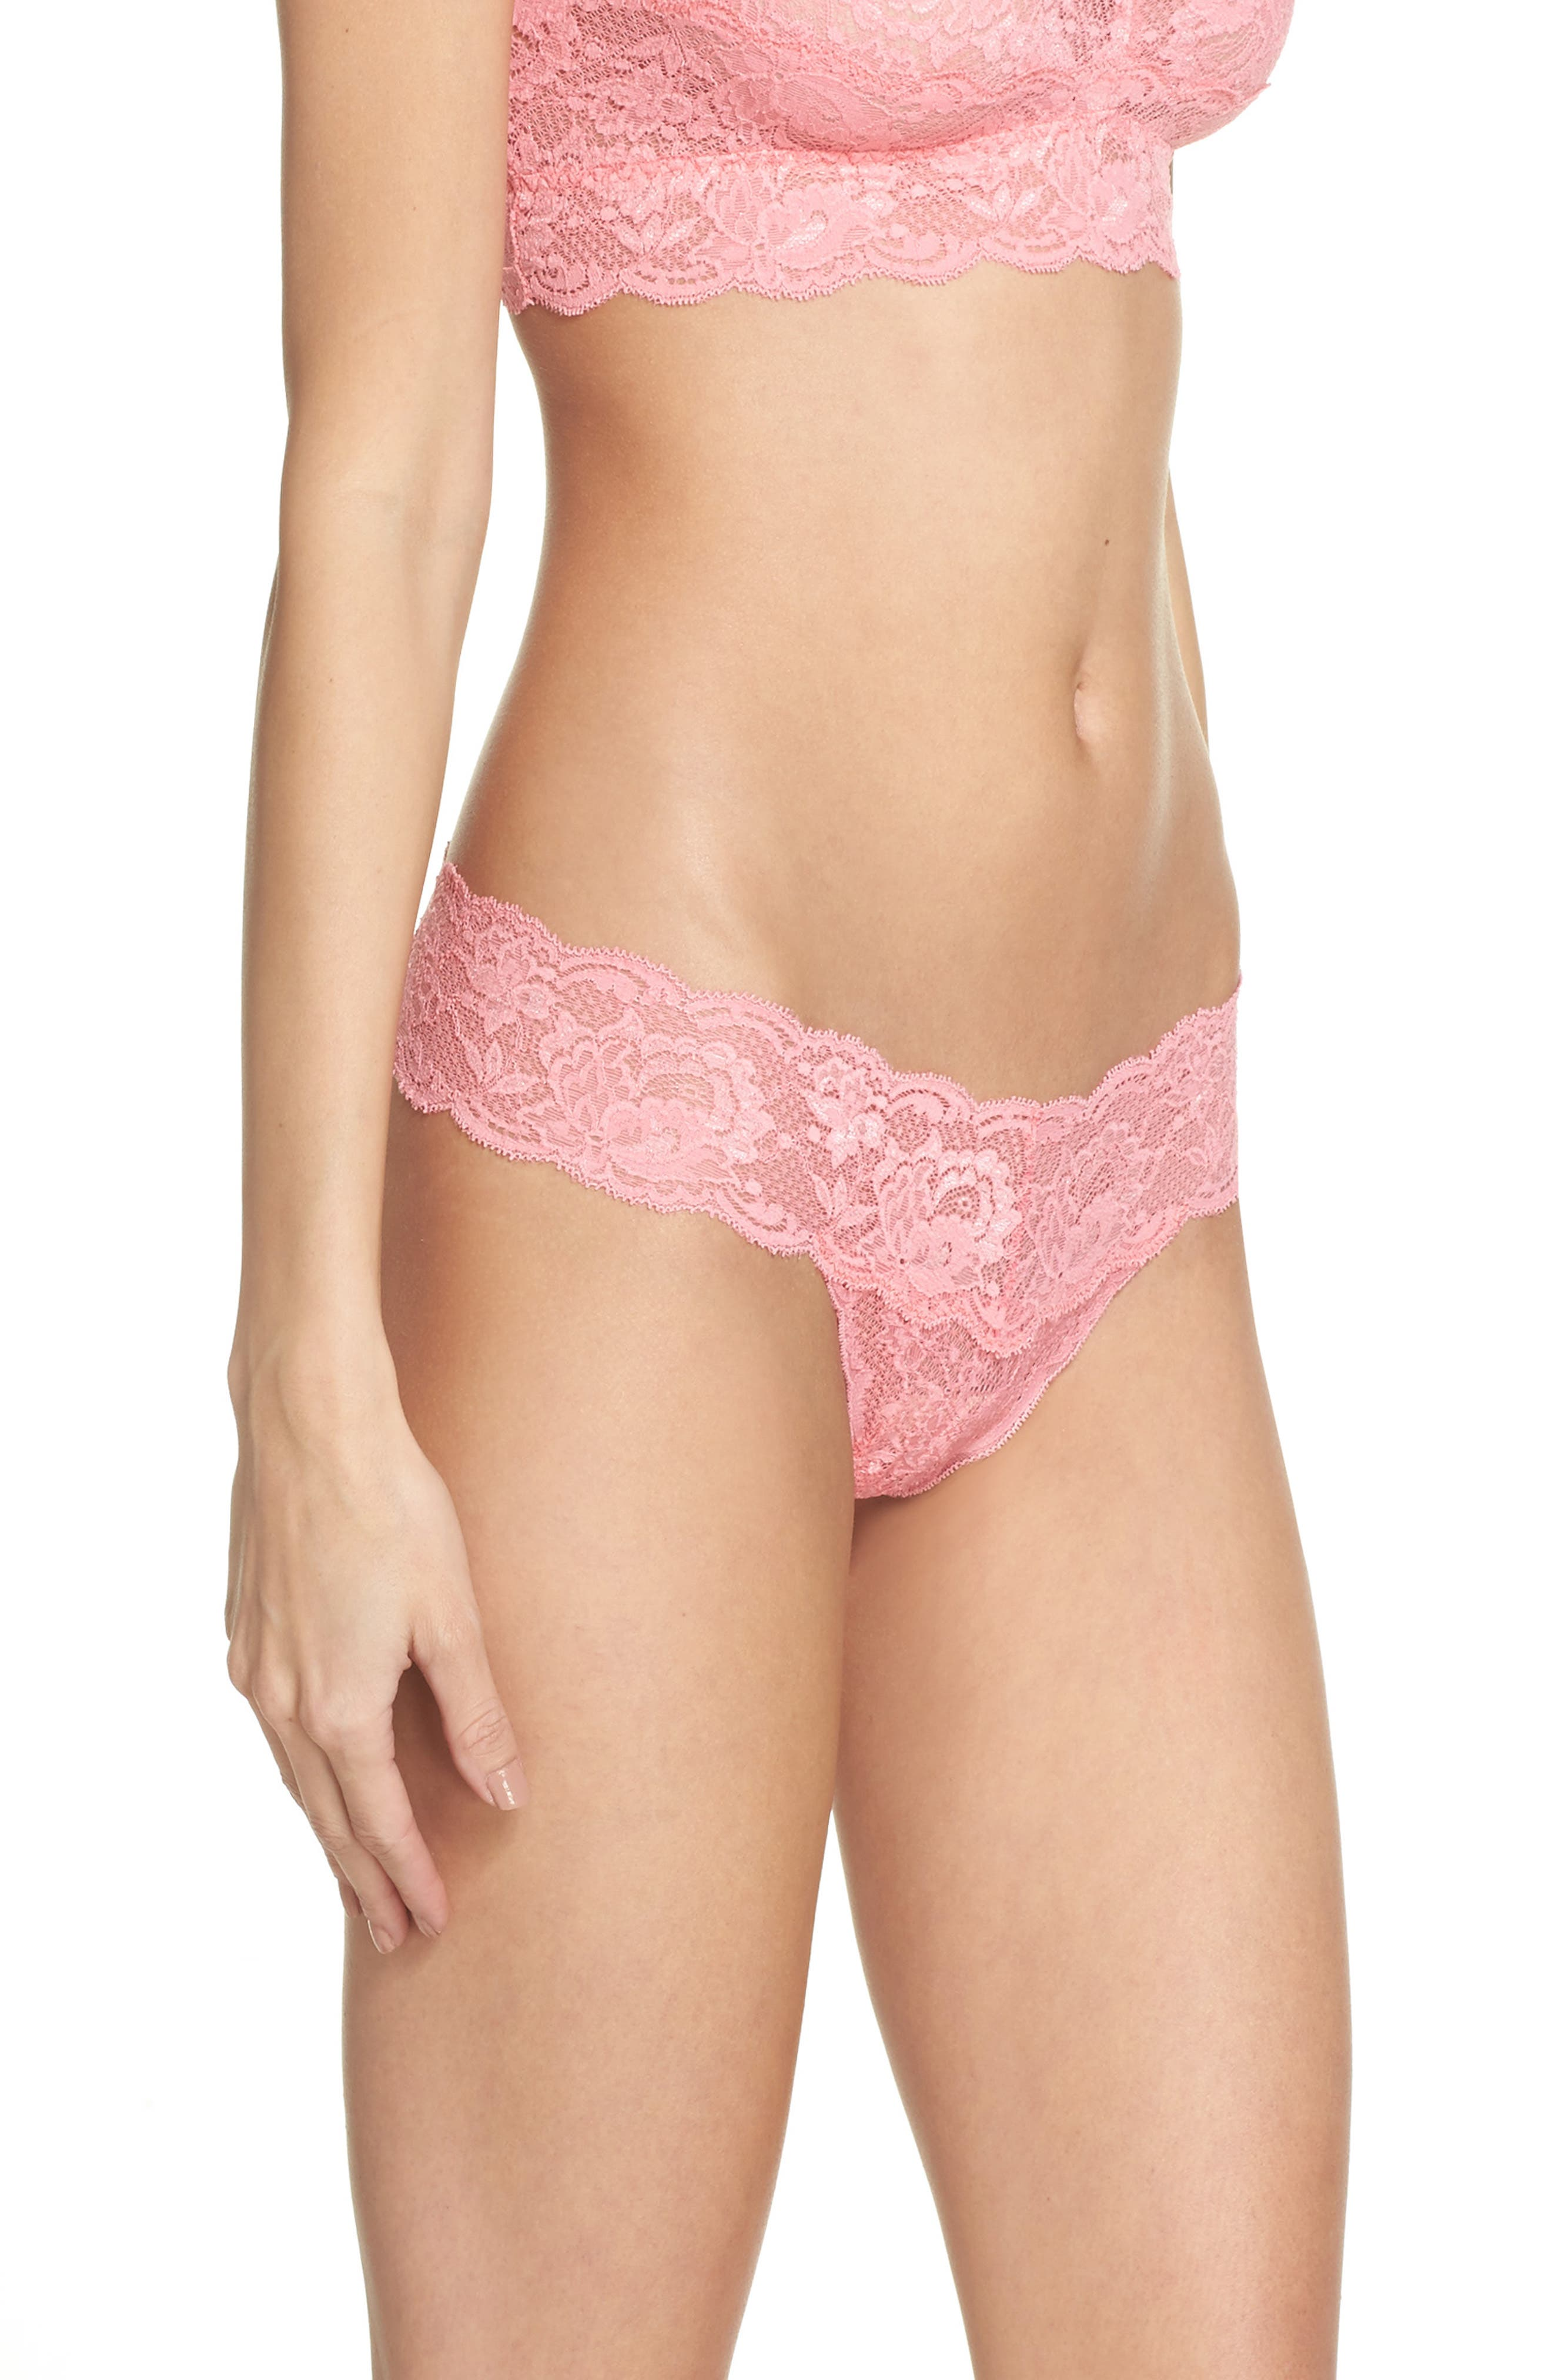 'Never Say Never Cutie' Thong,                             Alternate thumbnail 264, color,